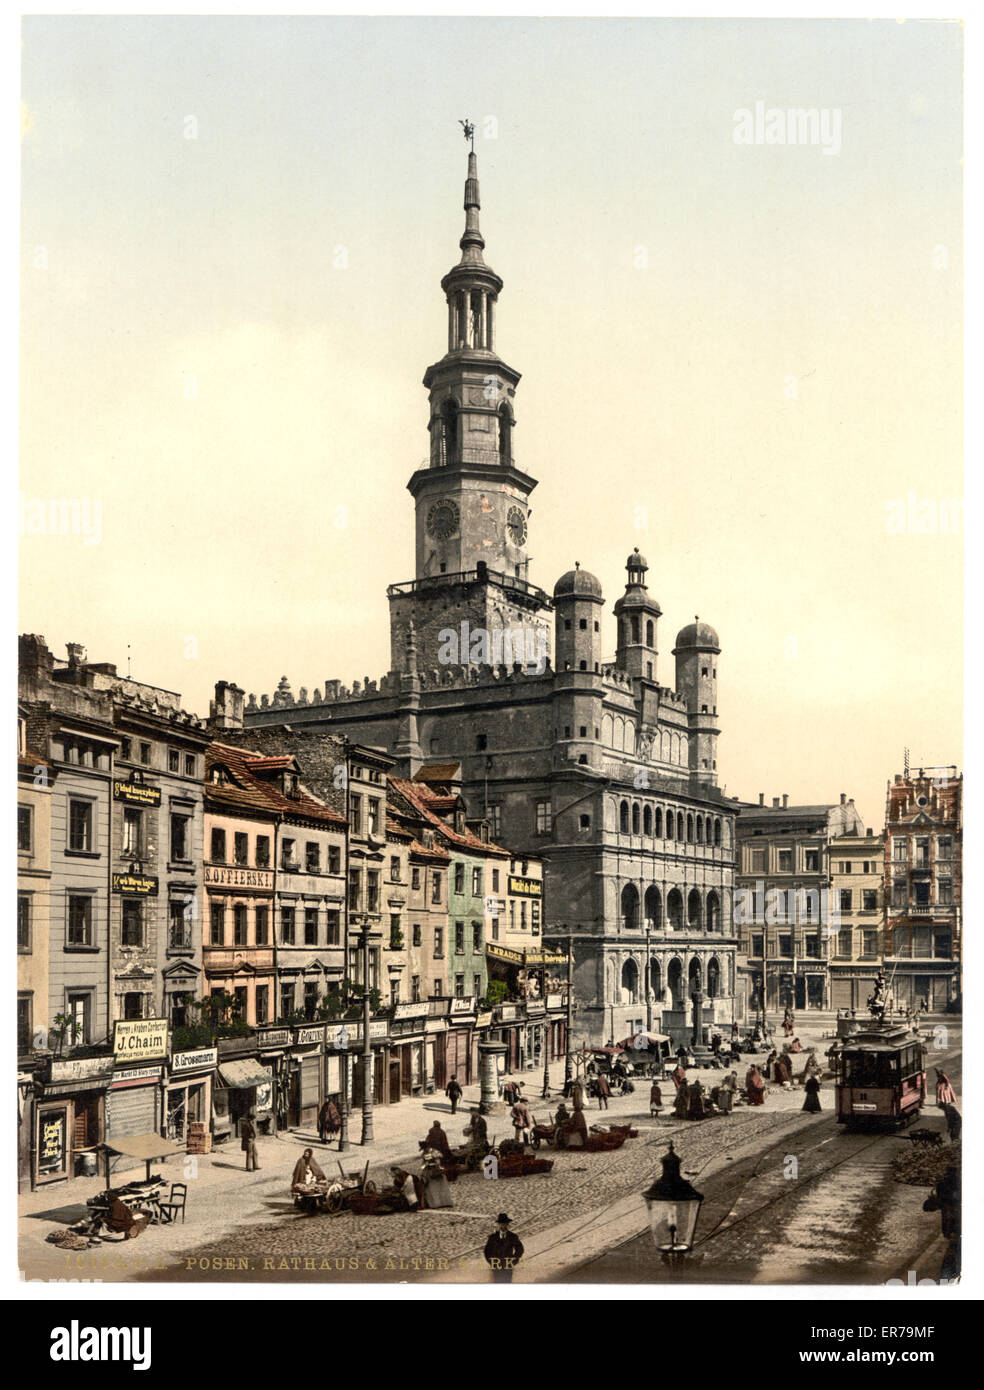 Court House and Old Market, Posen, Germany (i.e., Poznan Poland). Date between ca. 1890 and ca. 1900. - Stock Image